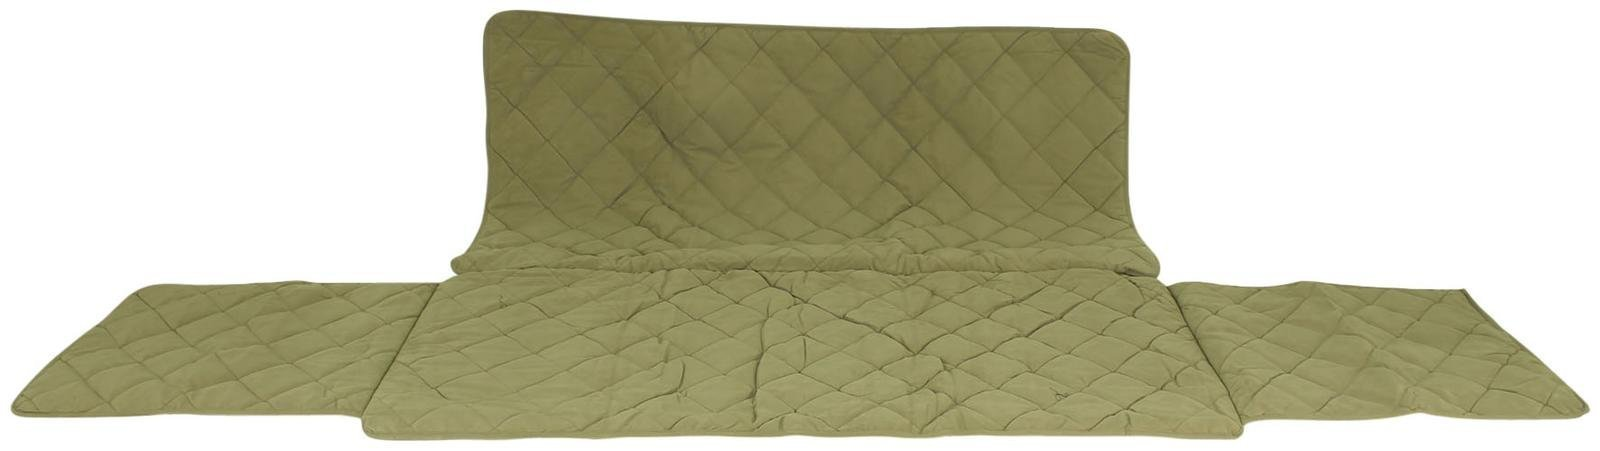 CPC Diamond Quilted Couch Protector, 60-Inch, Sage